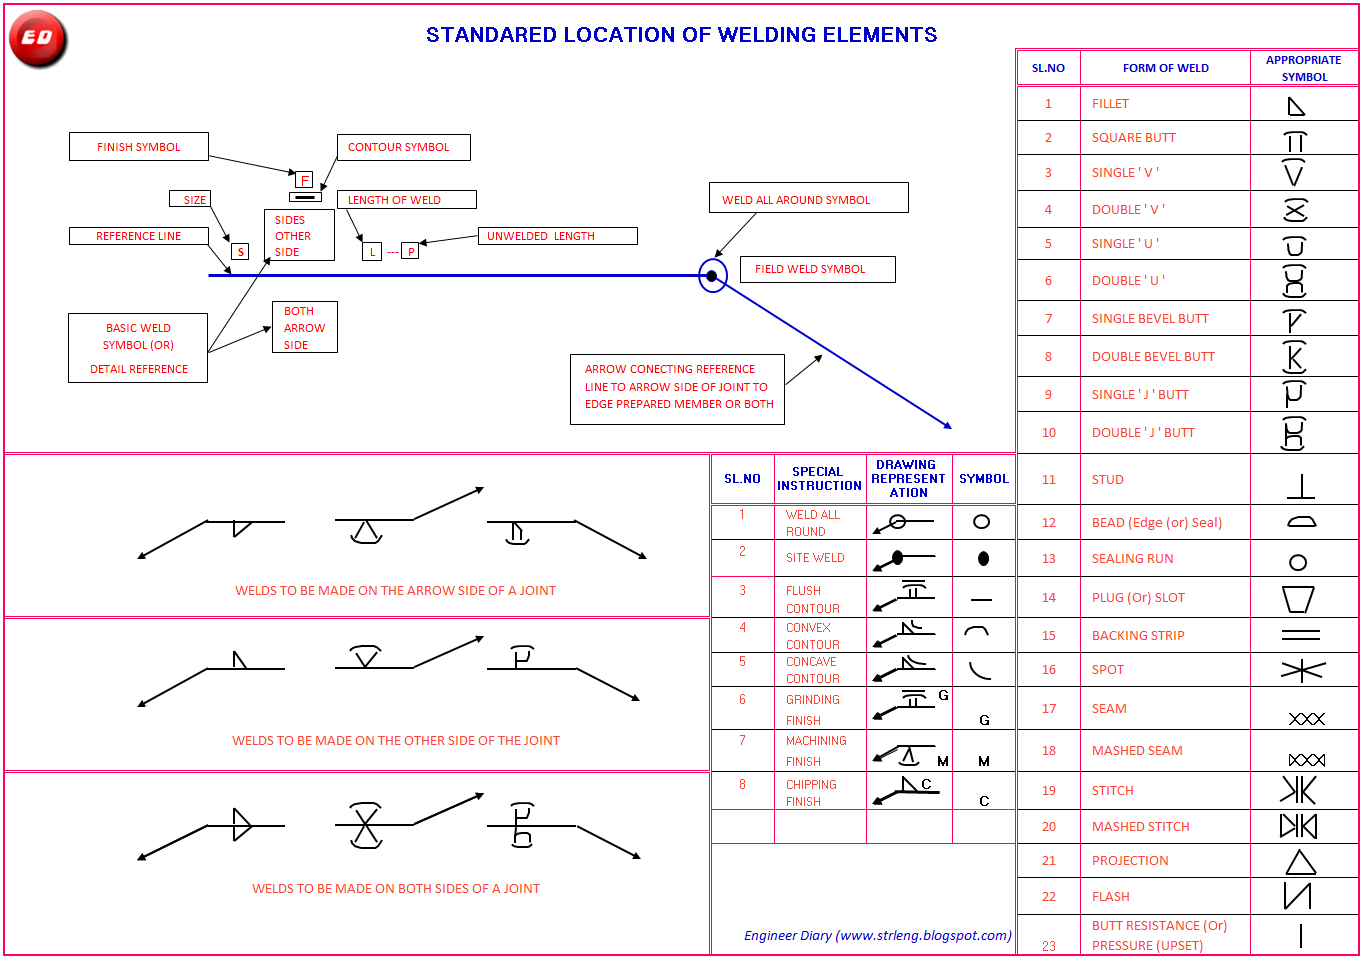 Welding symbol engineer diary all in one like welding symbol drawing representation and special instruction are mentioned in below sketch click on picture to enlarge buycottarizona